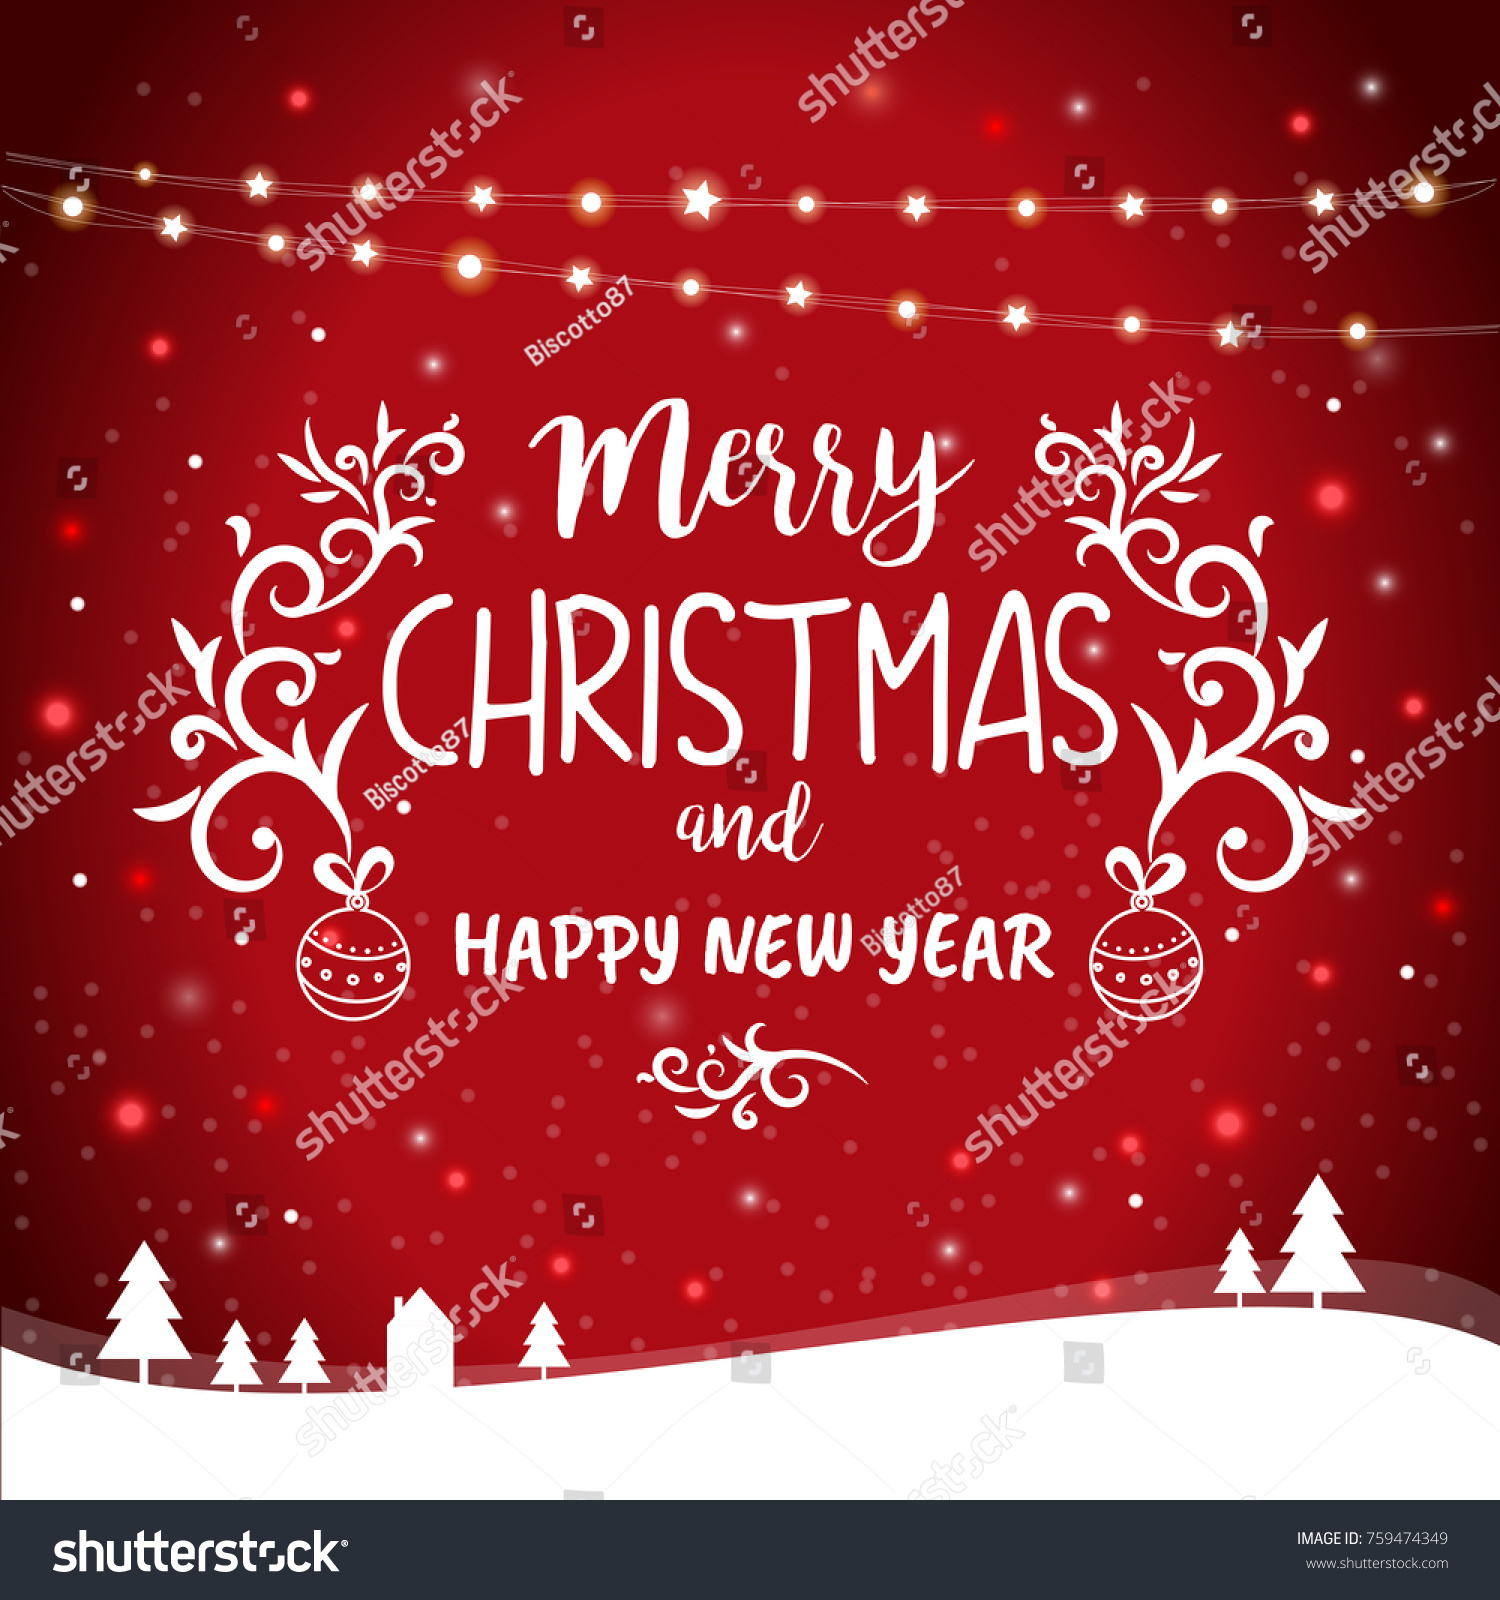 Merry christmas happy new year greetings stock vector 759474349 merry christmas and happy new year greetings card template vector illustration with hanging lights and kristyandbryce Images